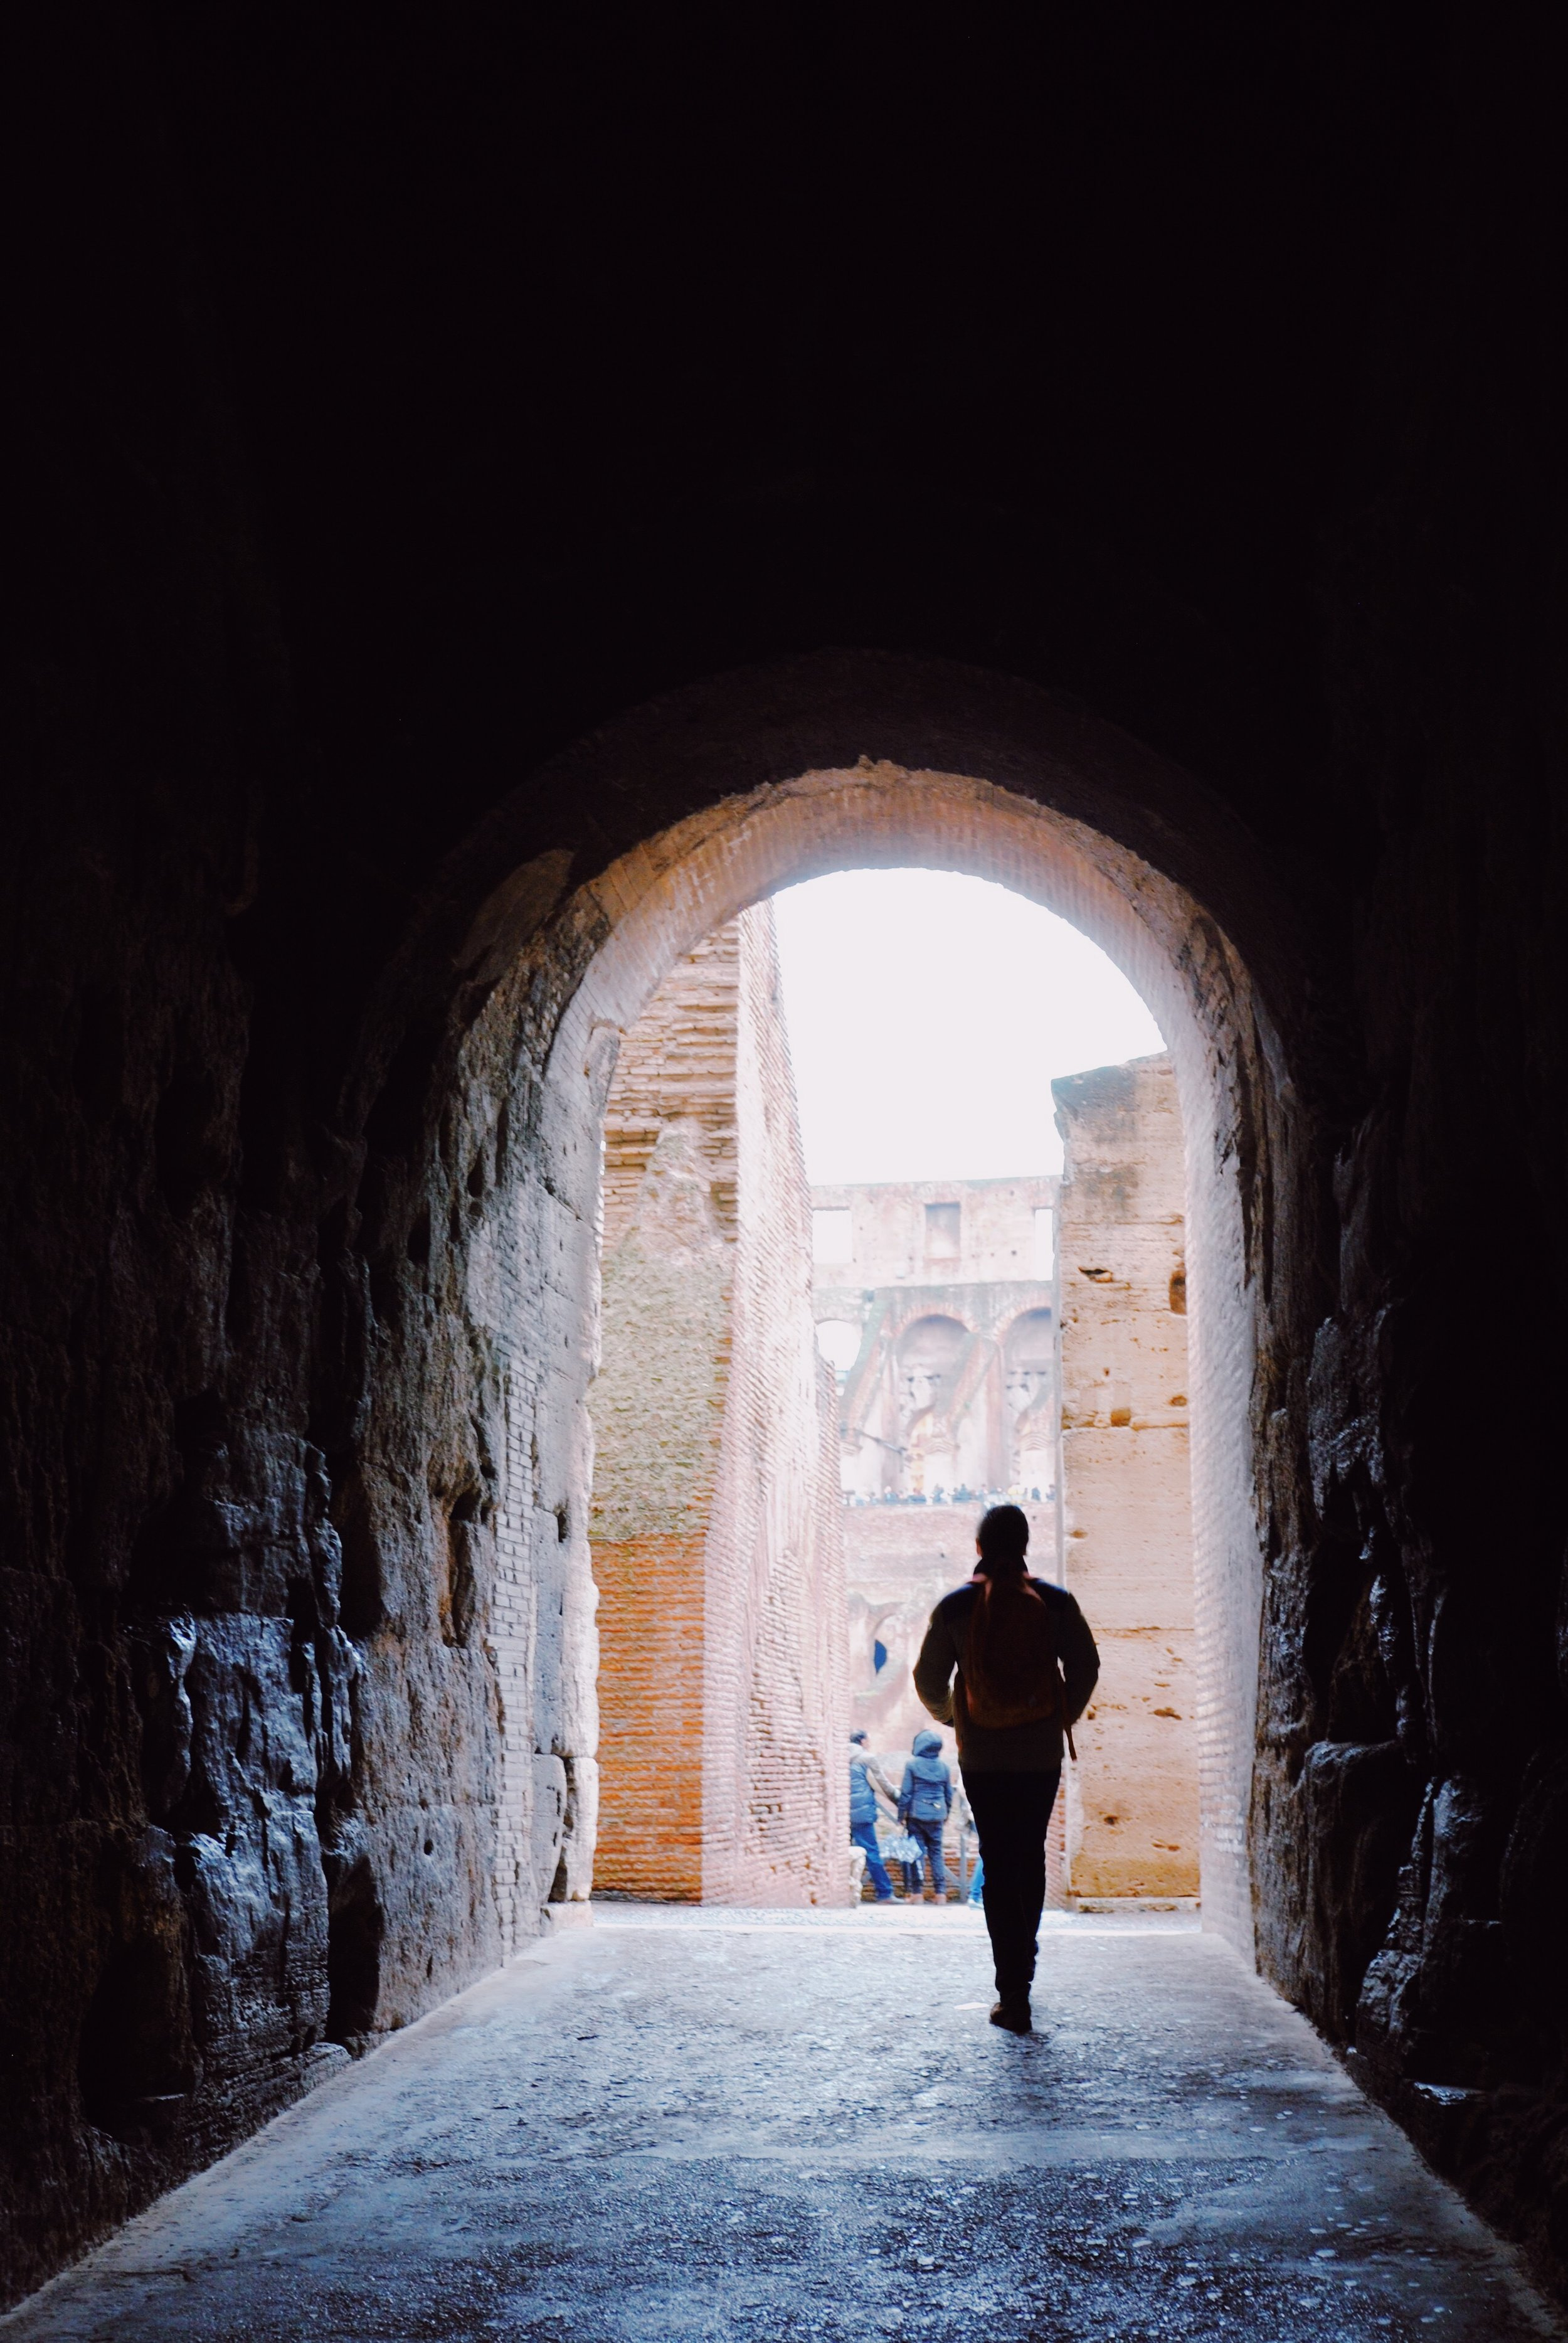 "Inside the Colosseum: Entering via a vomitorium (a passageway through which the crowds could enter). Vomitoria in latin means ""fast discharge"", from which the English word 'vomit' came from."